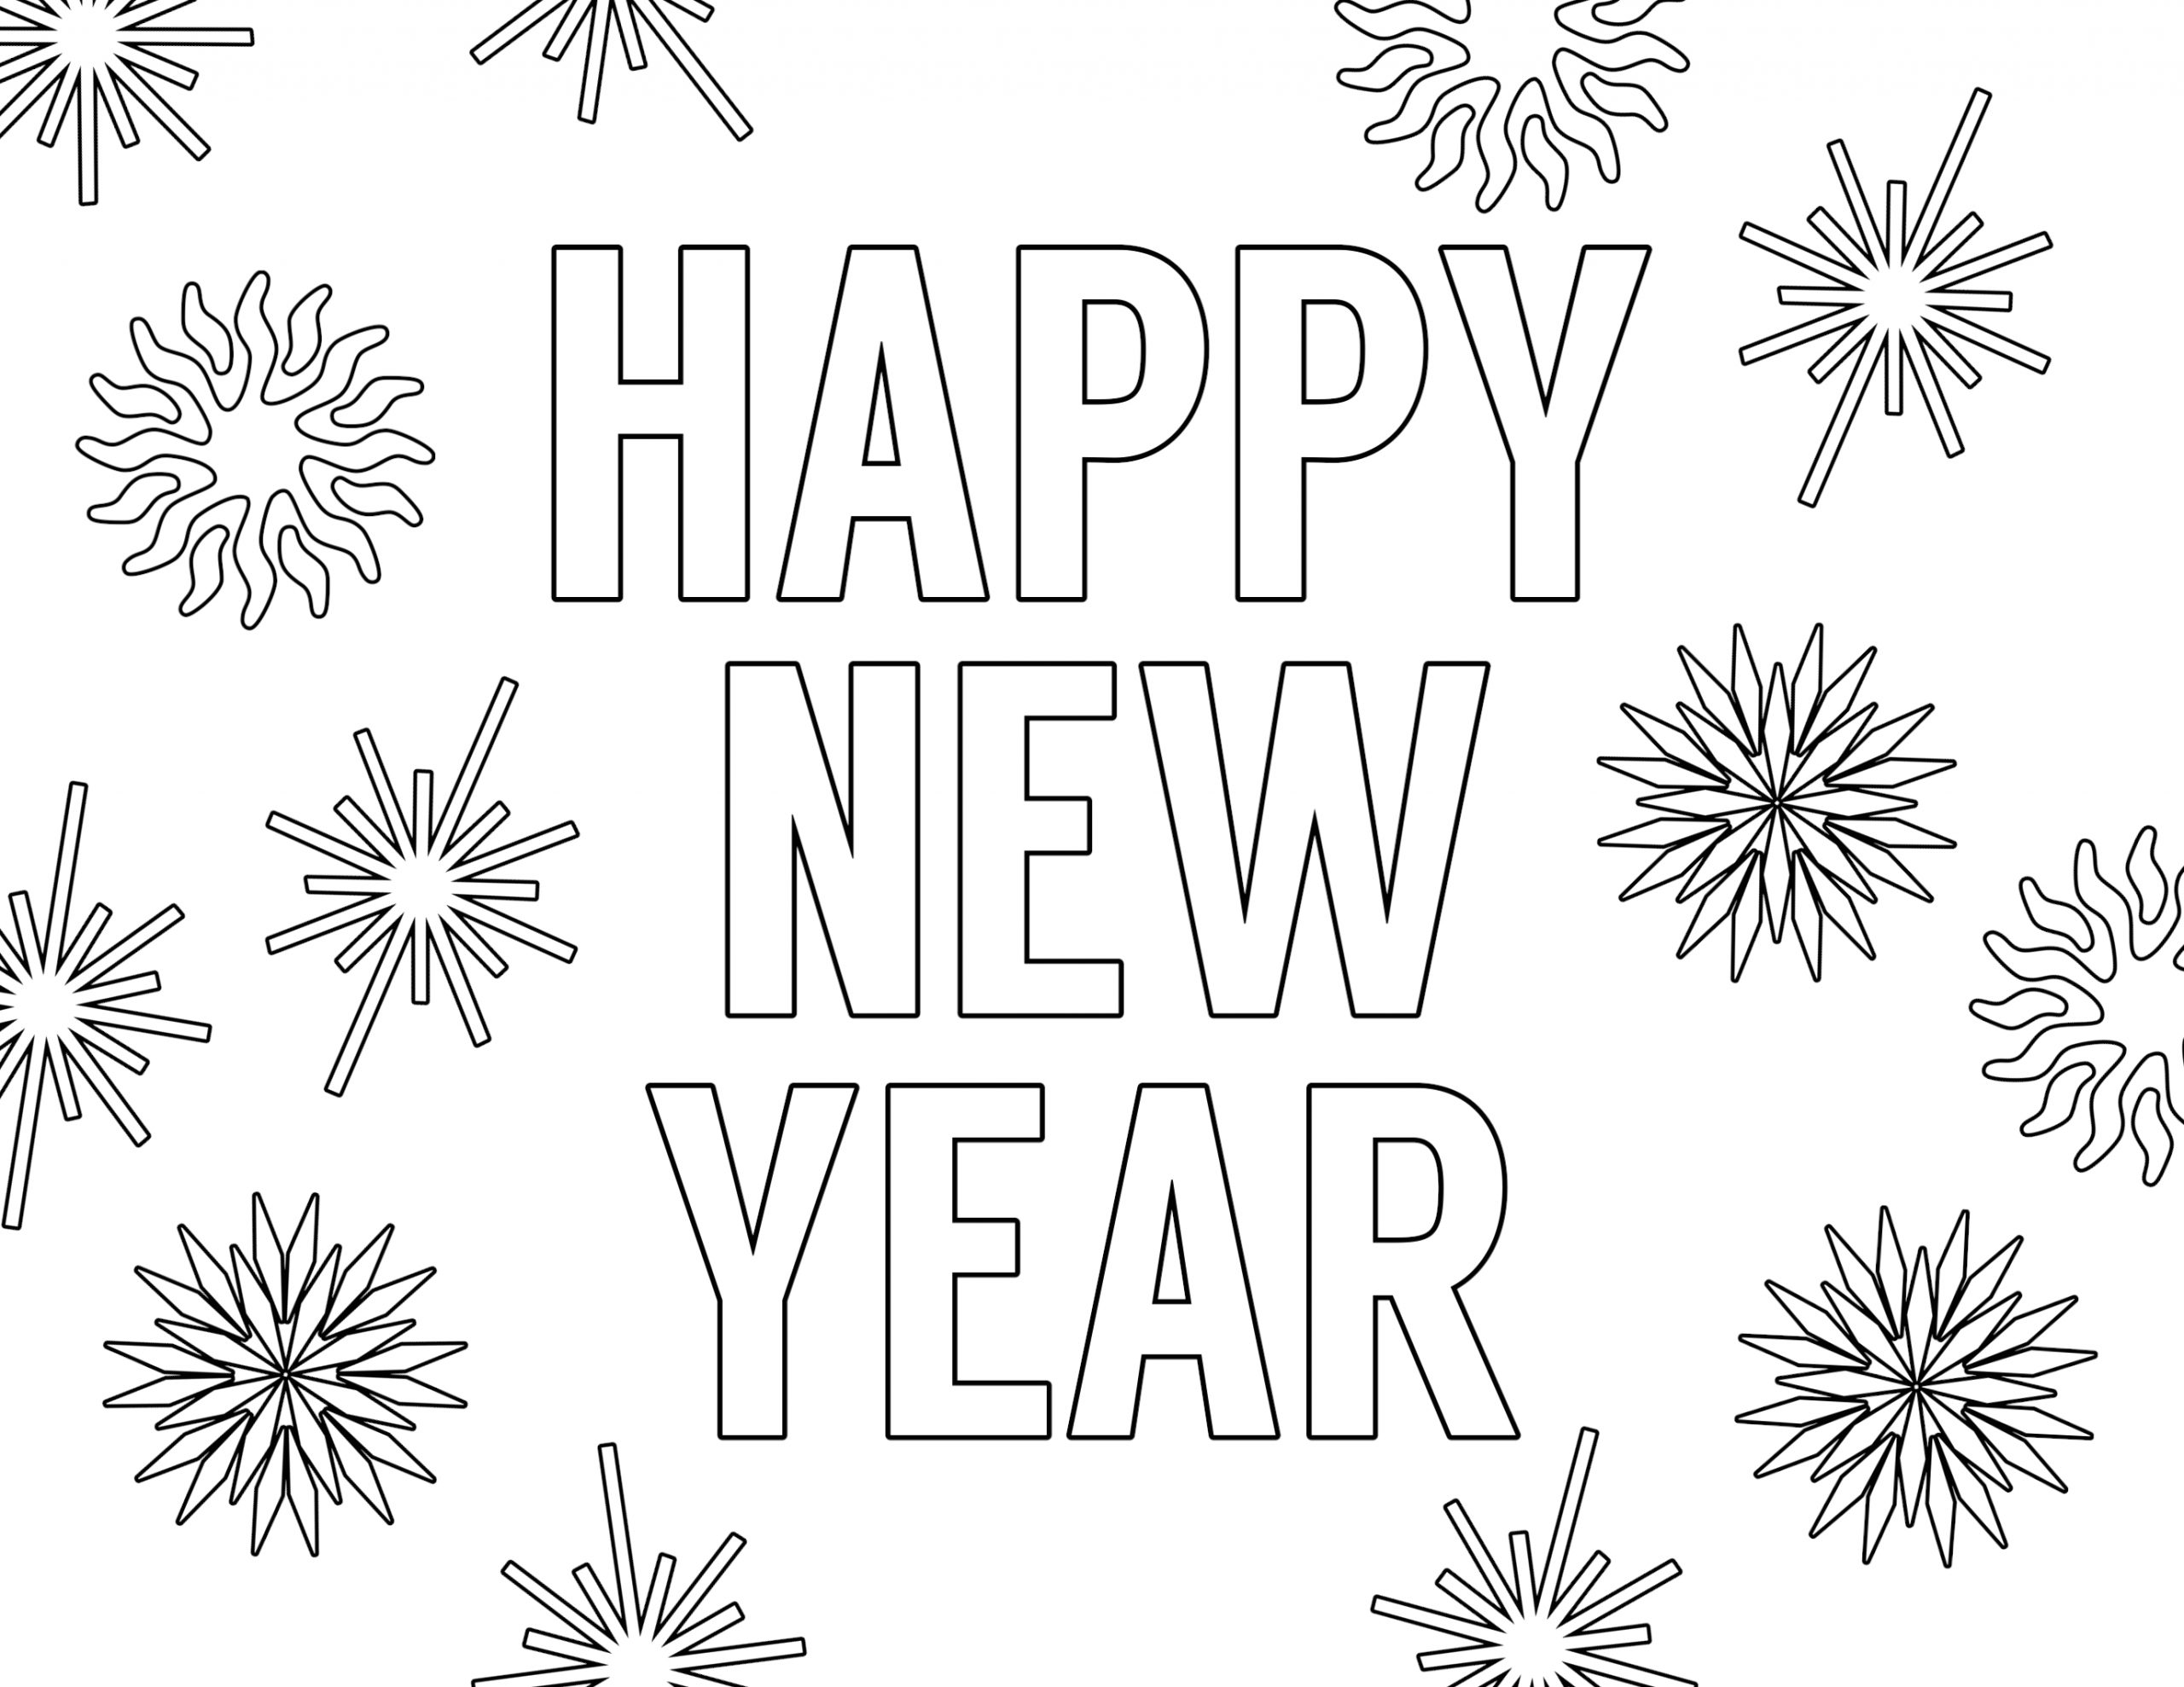 Free Printable Happy New Year Coloring Pages Happy New Year Coloring Pages Free Printable Paper Trail